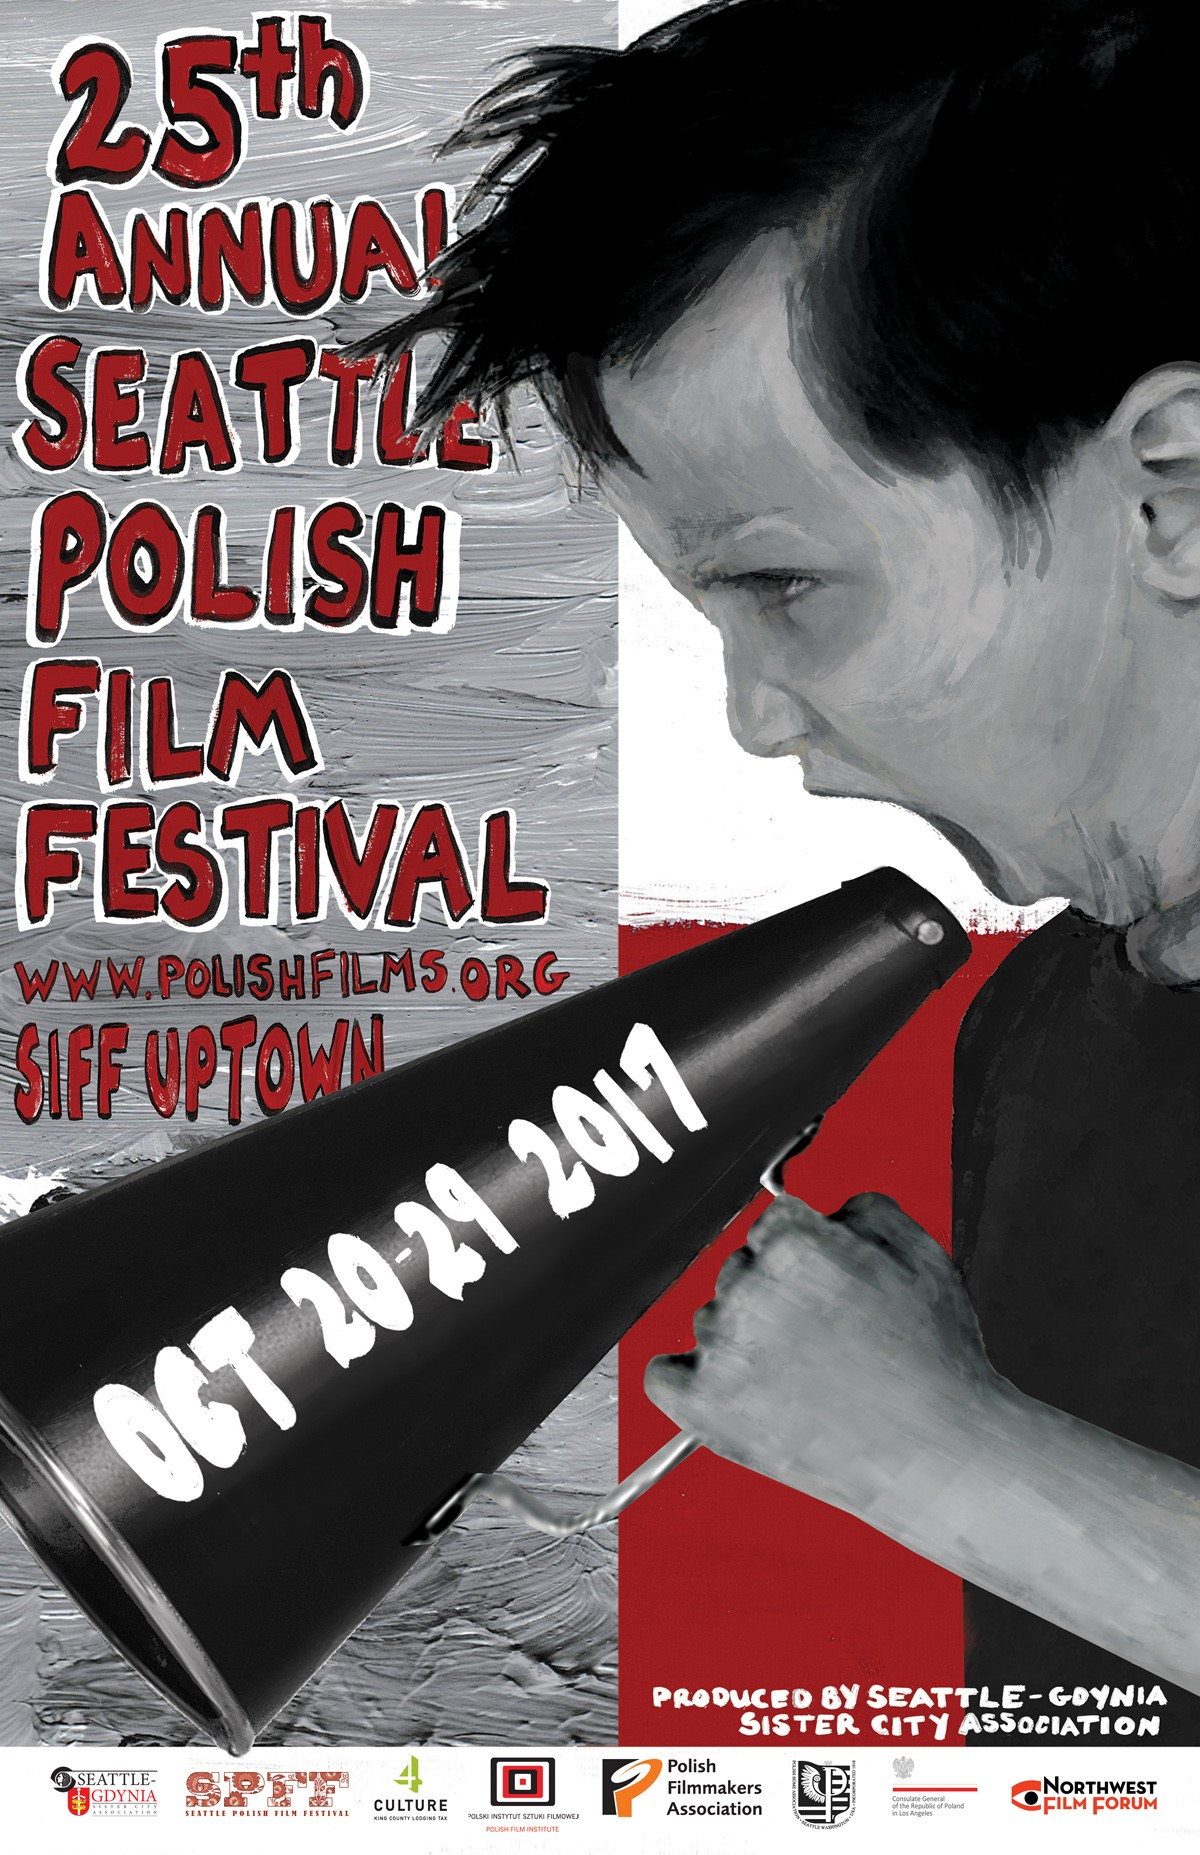 The 25th annual Seattle Polish Film Festival is coming soon!